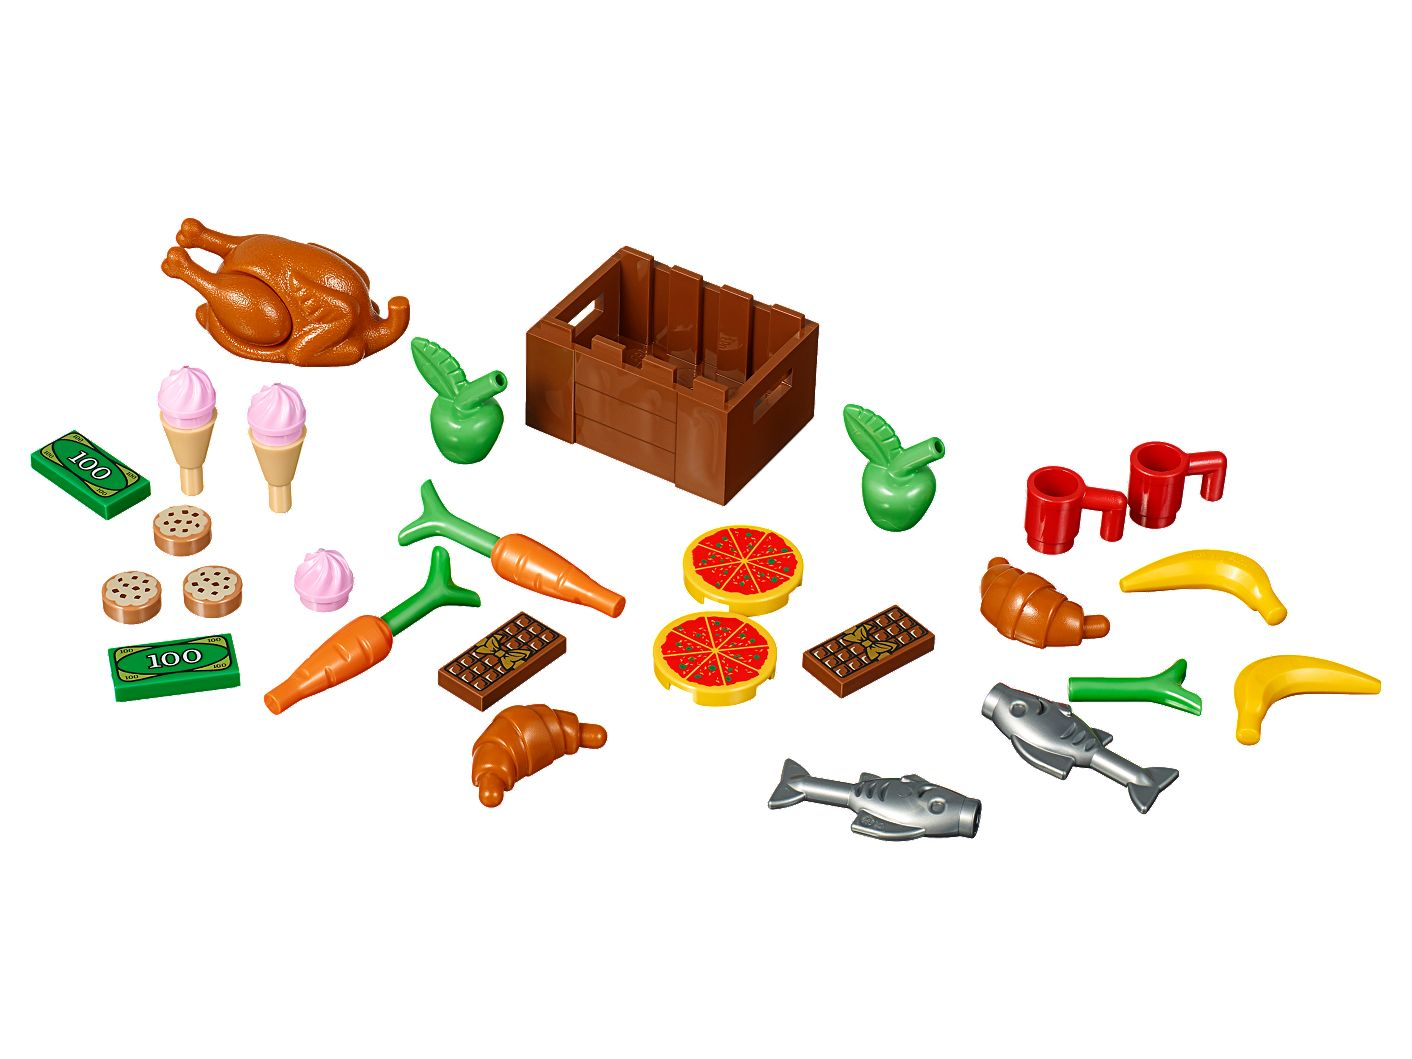 Food Accessories 40309 | City | Buy online at the Official LEGO® Shop US